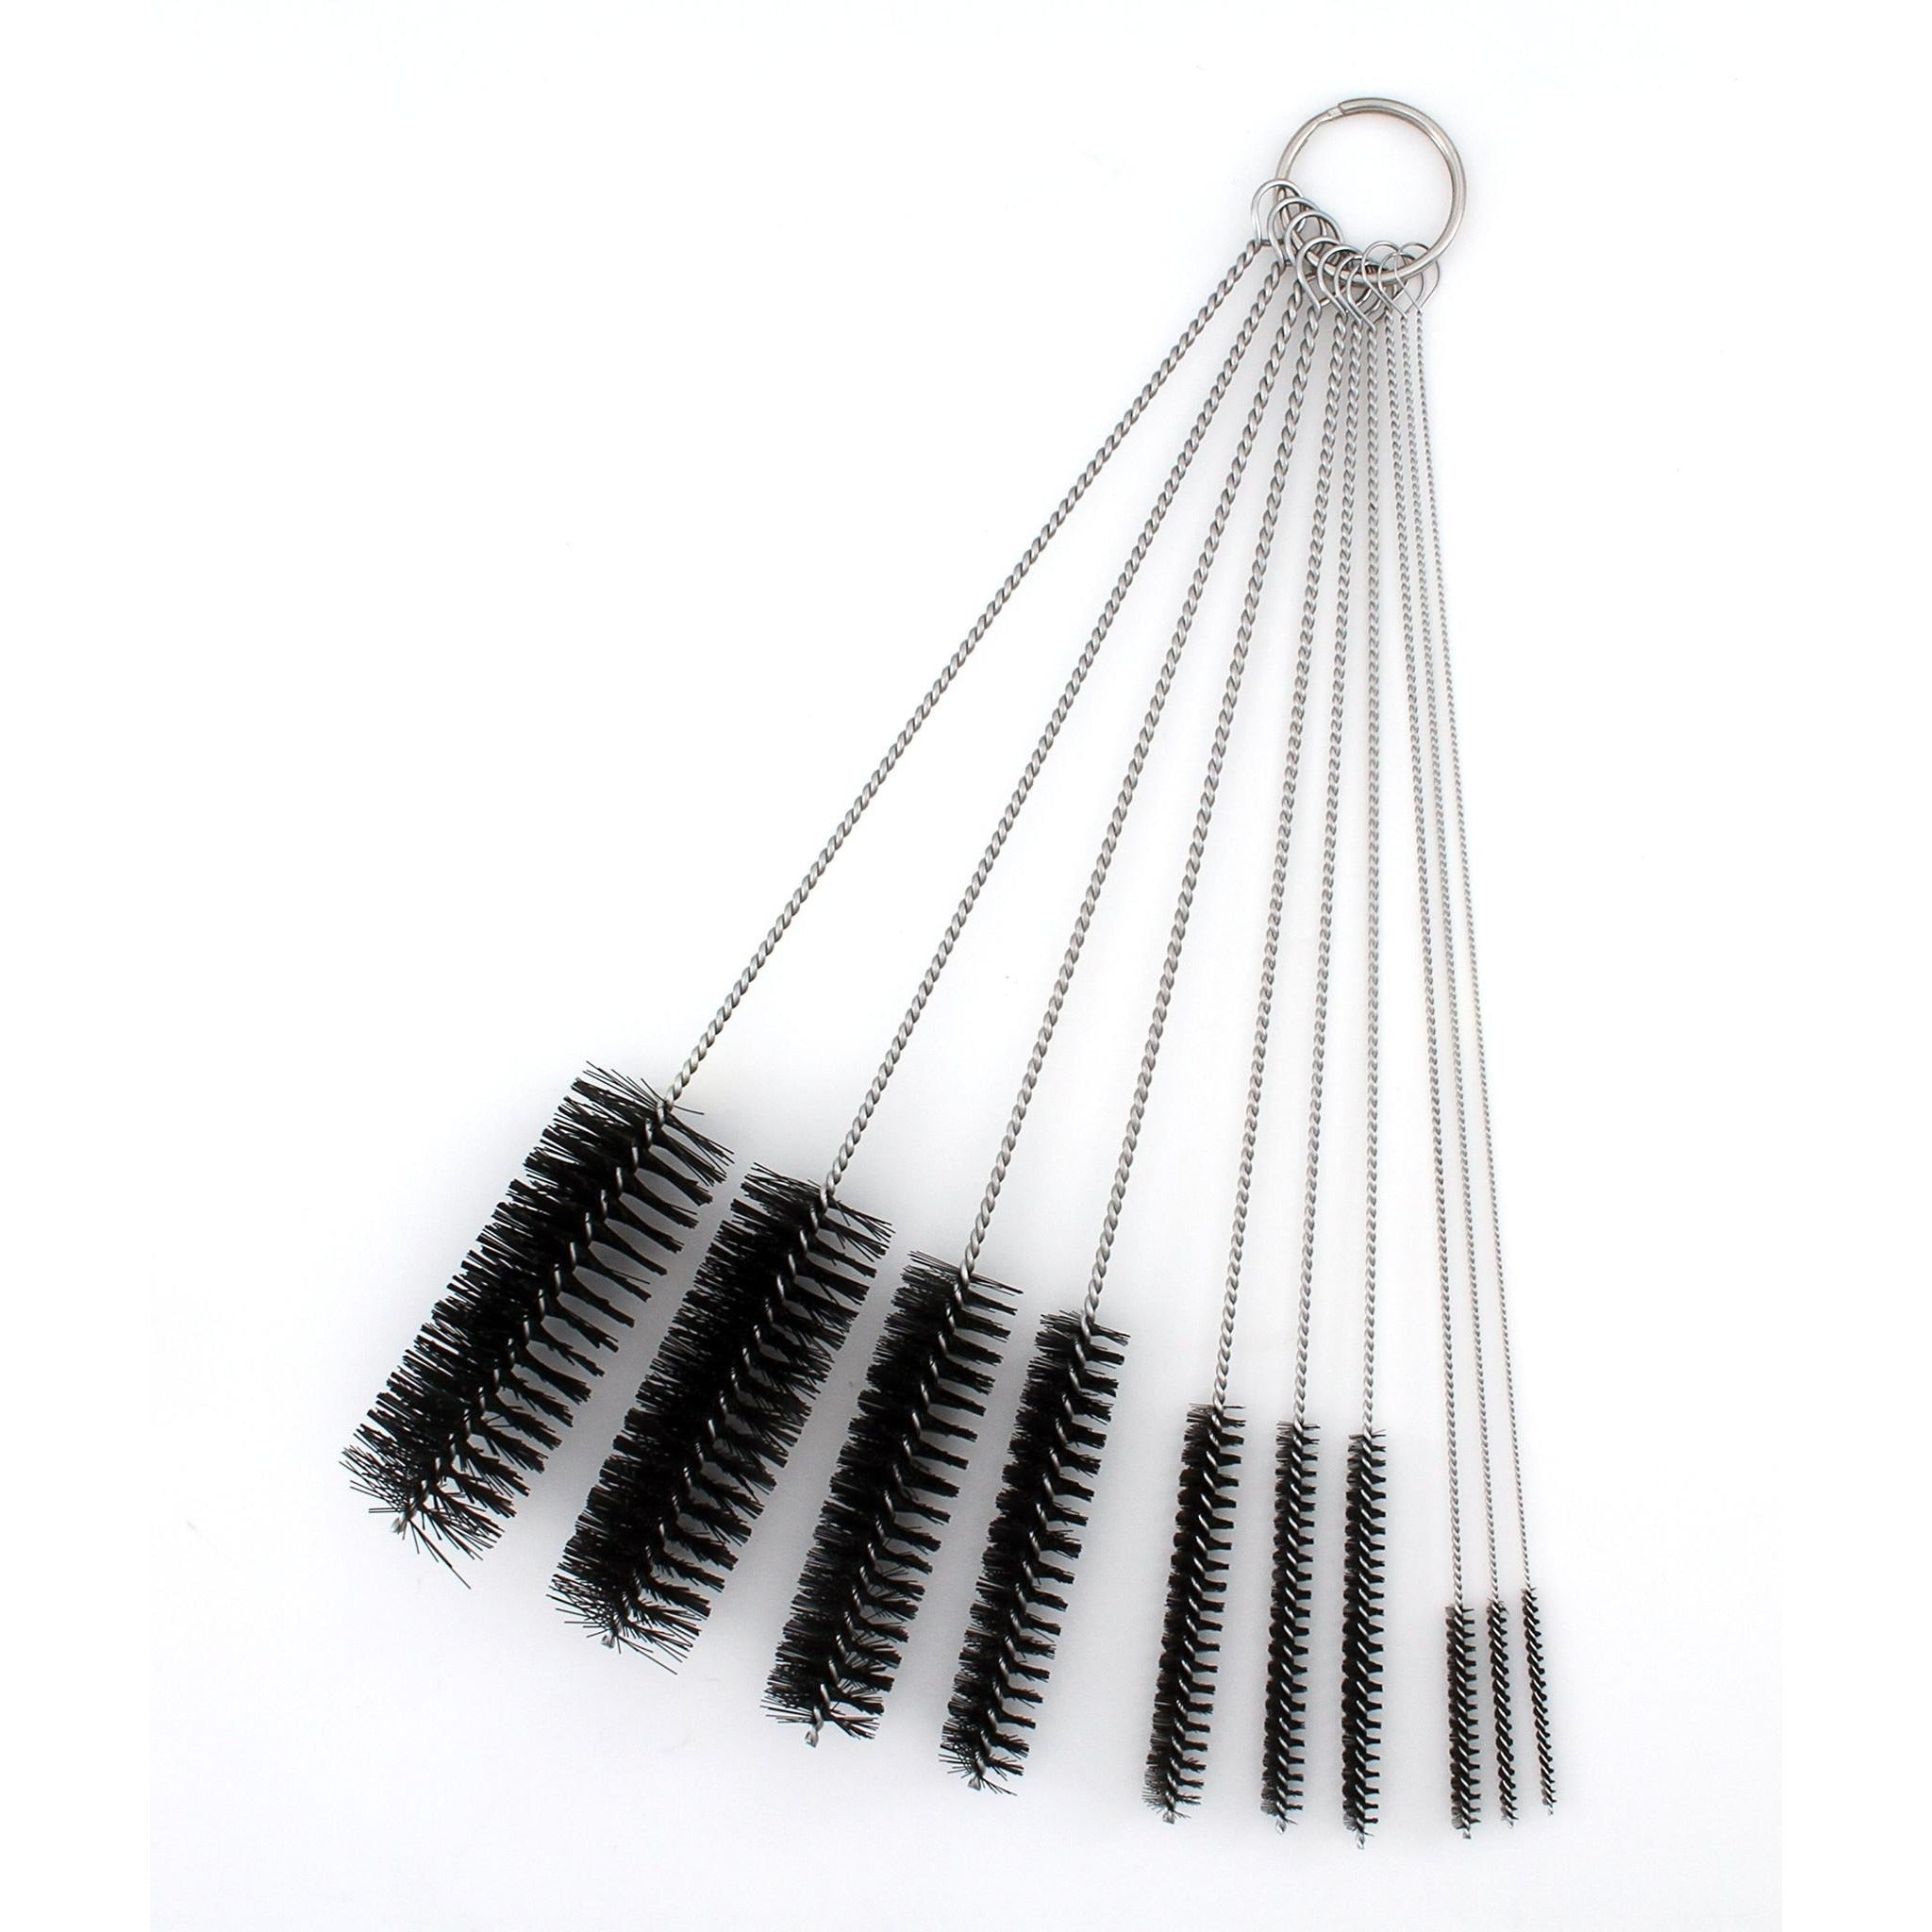 Pipe Cleaners - 8 Inch Nylon Tube Brush Set - Variety Pack 1 set of 10 pieces - WoodStonePipes.com   - 2